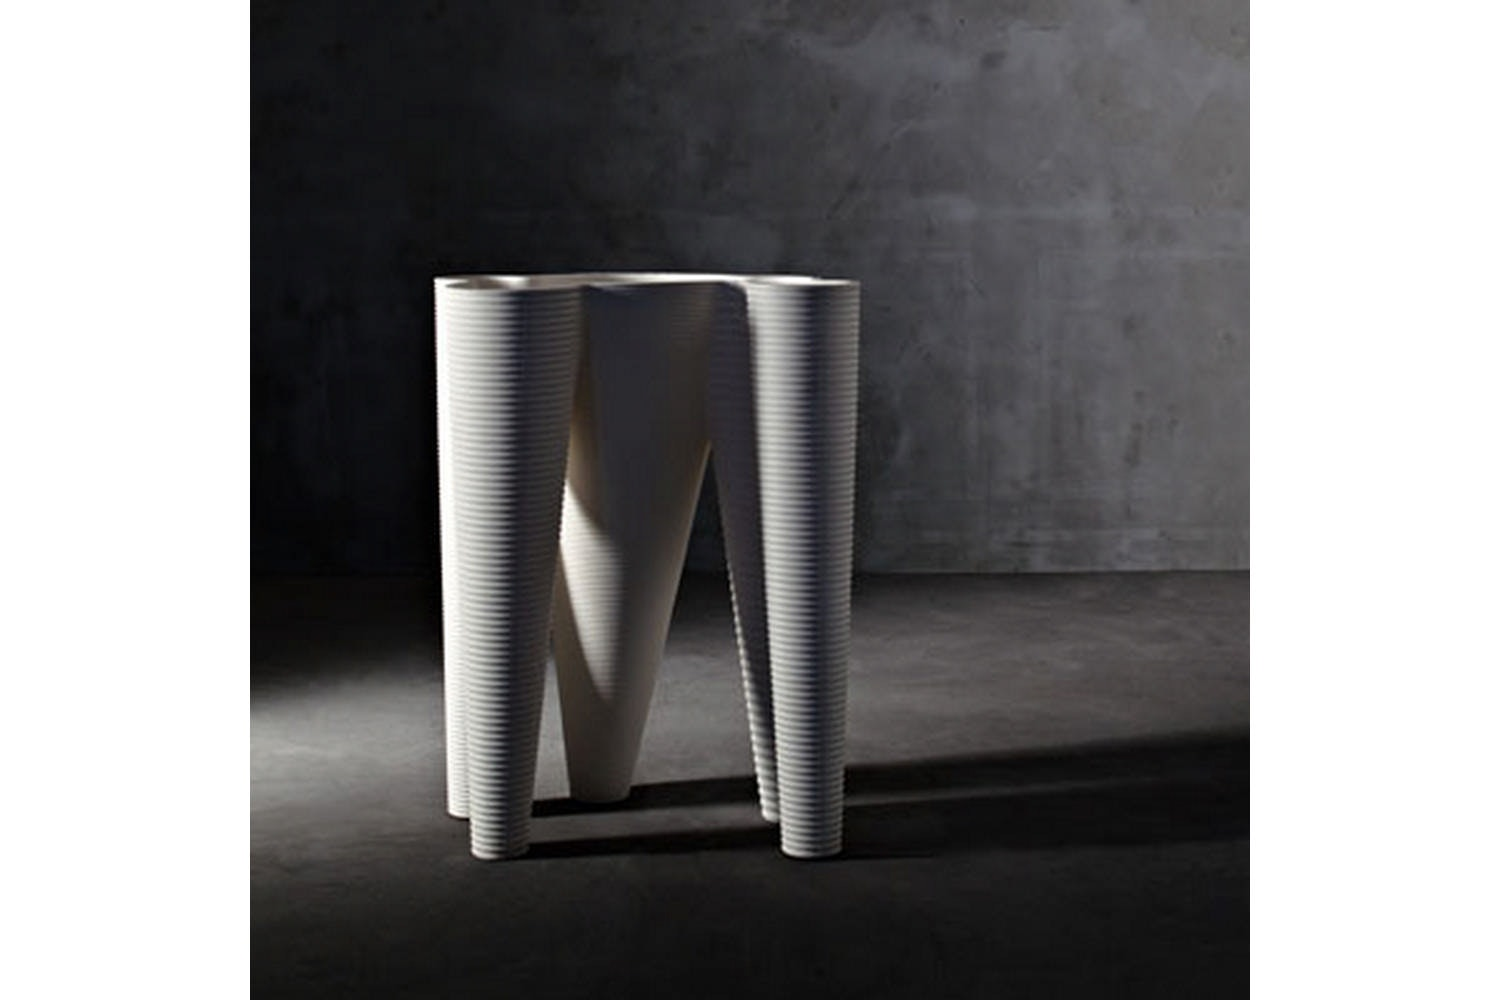 The Vases Pot by Ron Arad for Serralunga